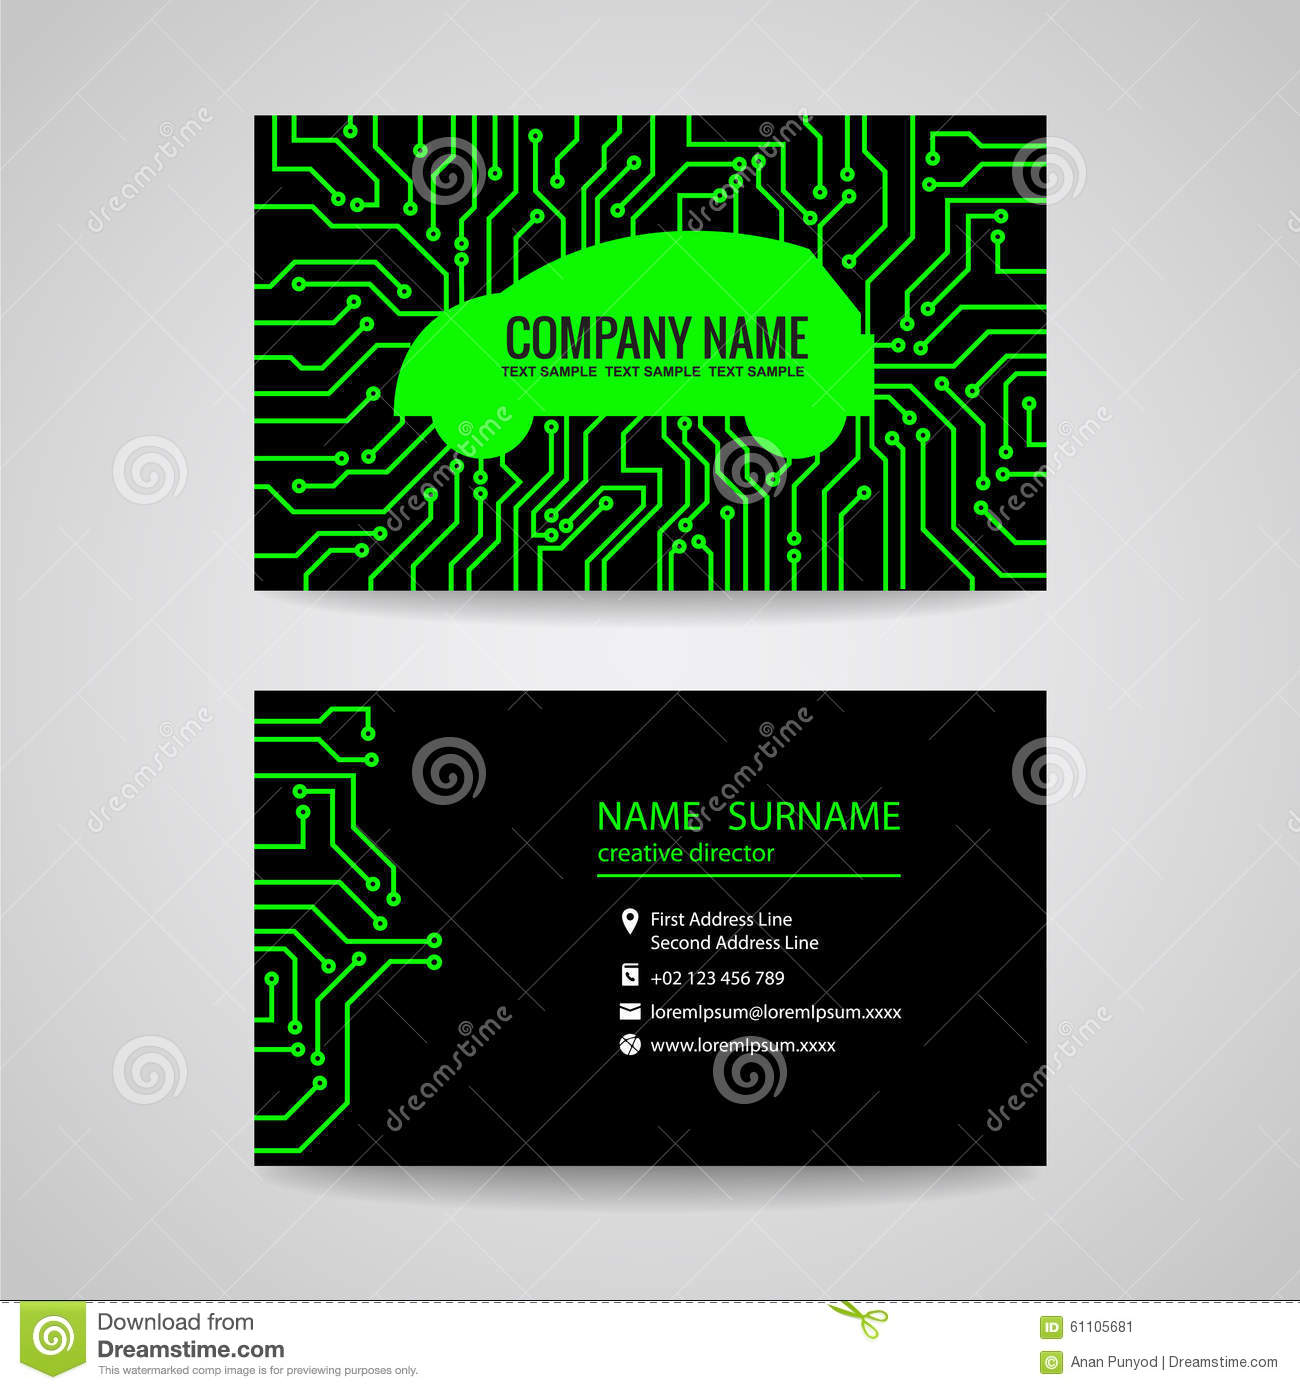 Printed Circuit Board Clicking Electrical Work Wiring Diagram Blank Green Pcb Stock Photo Image 63563161 Business Card Car And Electronic On Black Background Vector Led Boards Manufacturing